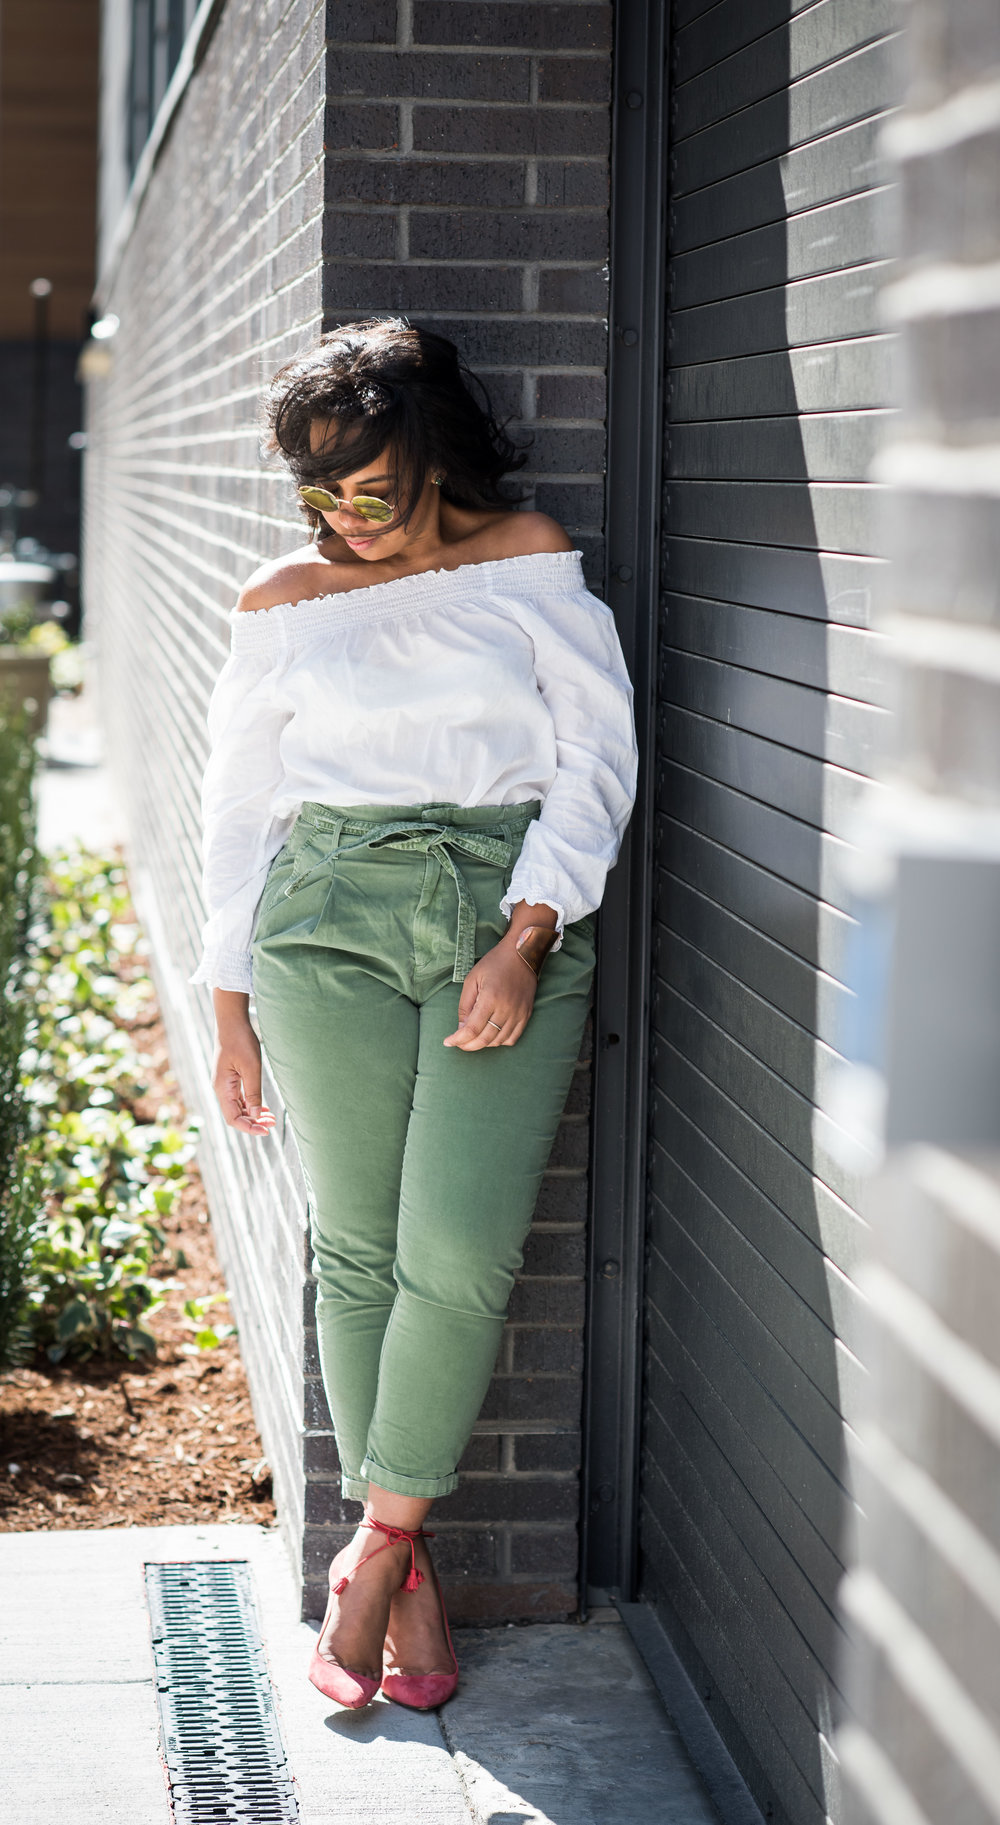 gap-paper-bag-waist-chinos-off-the-shoulder-blouse-jcrew-tassle-pumps-round-sunglasses-urban-outfitters-spring-fashion-2.JPG